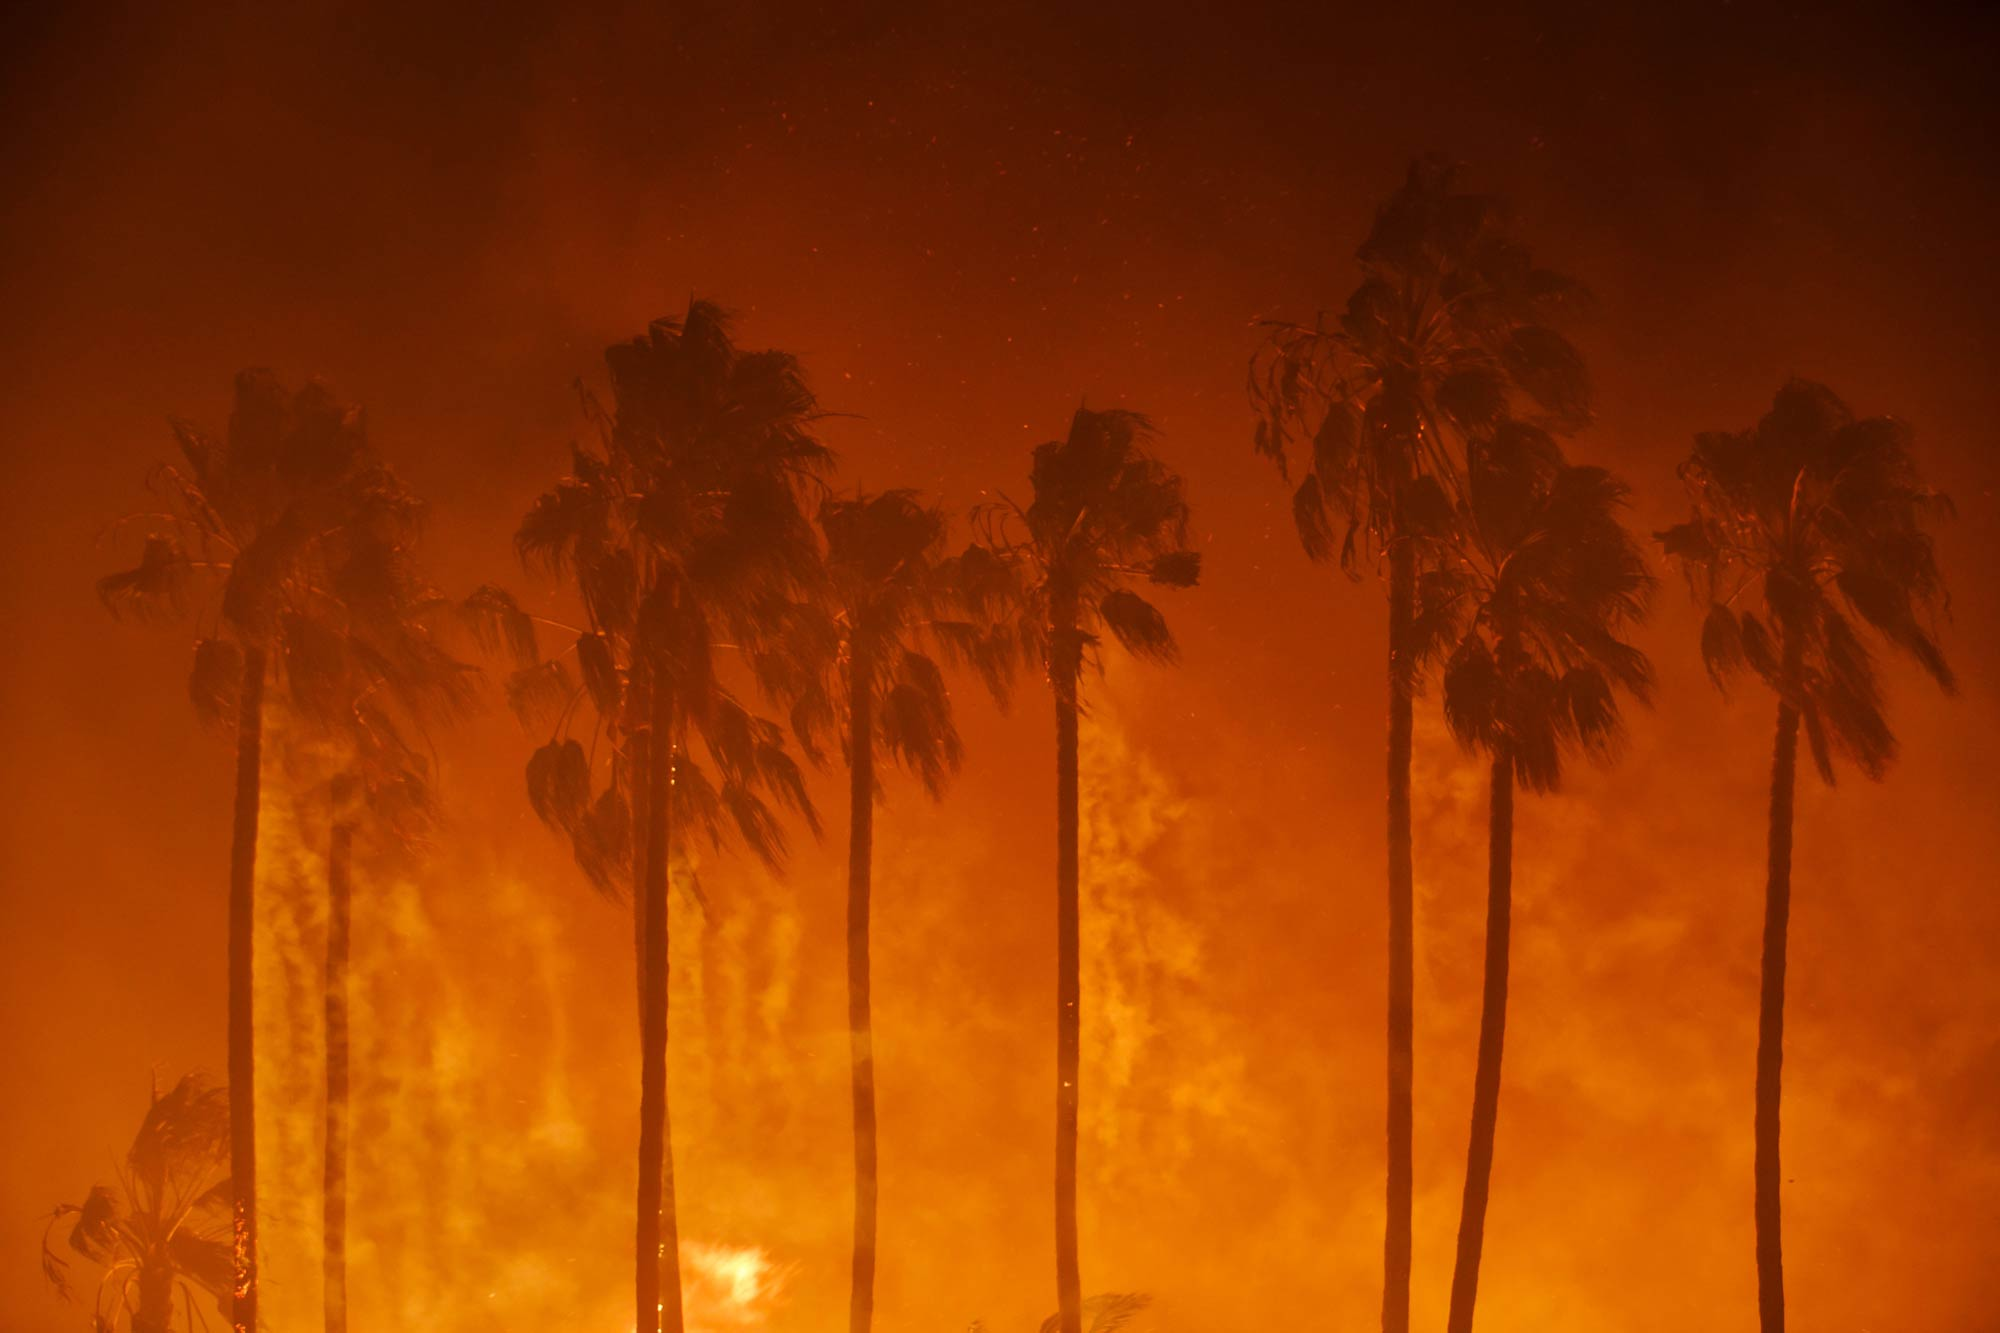 Title image: Smoke blows out of the burning palm trees as brush threatens homes in Ventura County. (© Marcus Yam / Los Angeles Times via Getty Images, 5 December 2017)Kelly Shannon is a professor of urbanism at KU Leuven's Department of Architecture.